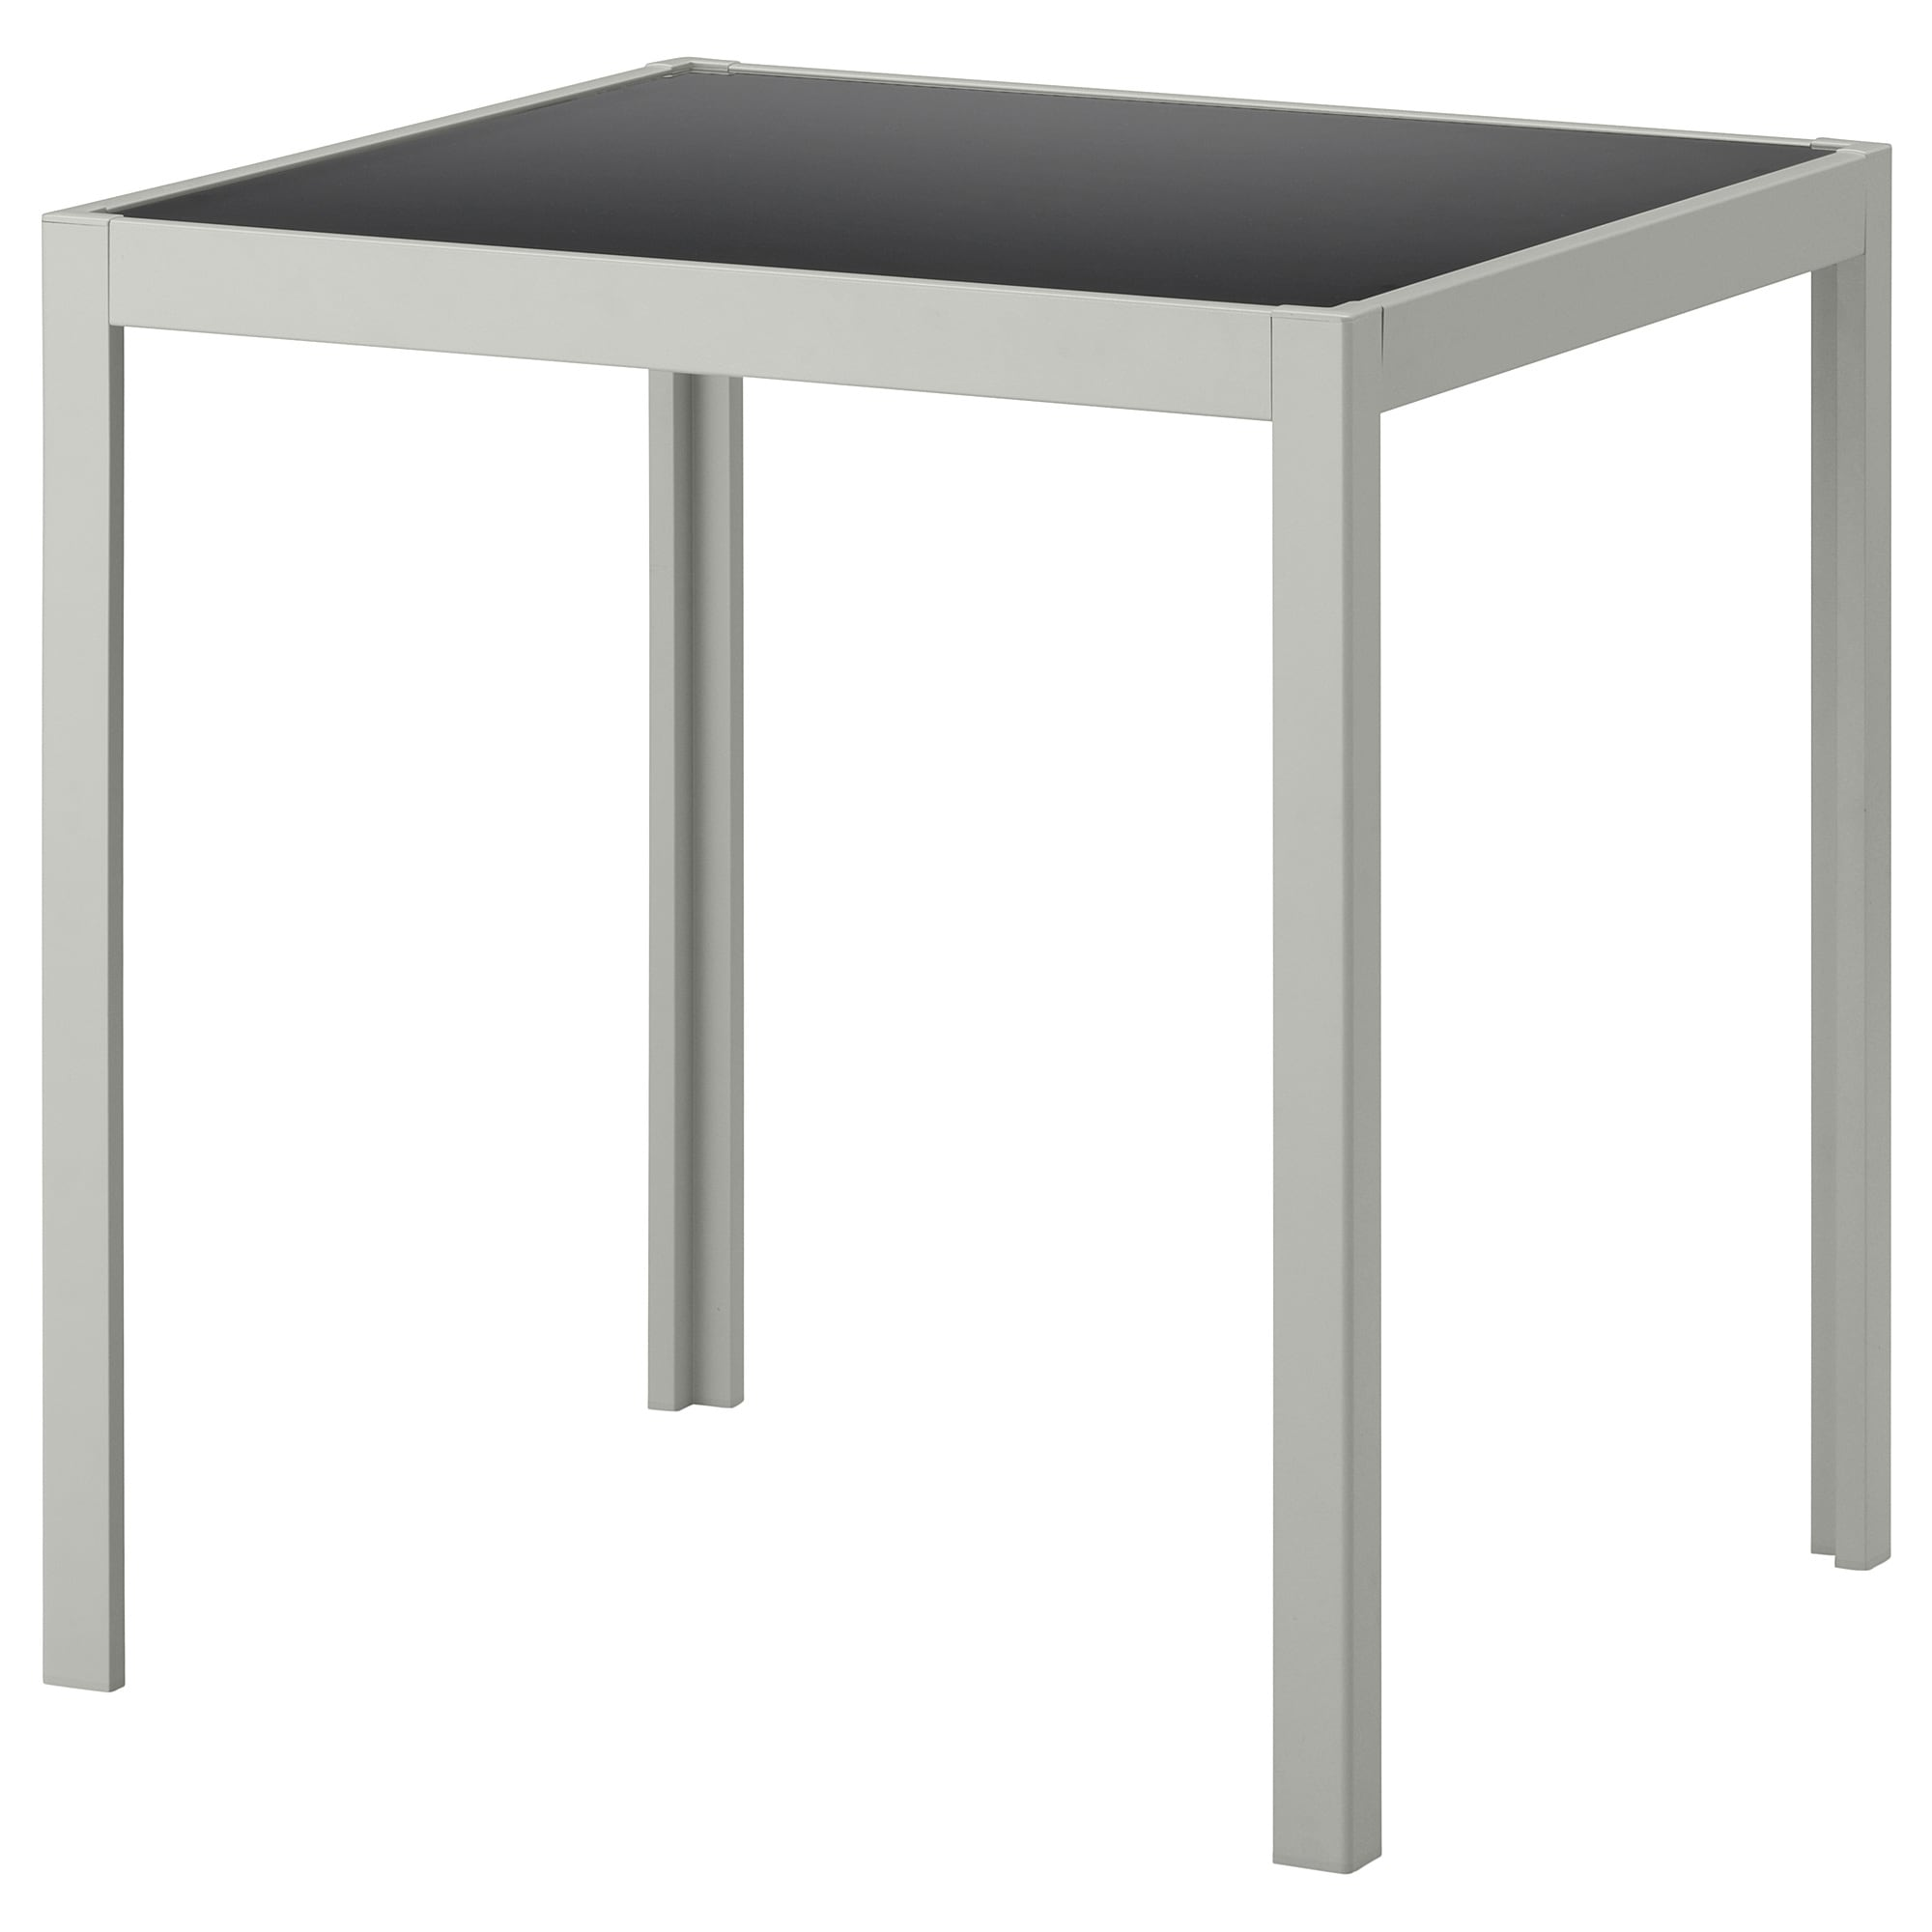 sjalland table outdoor glass grey light ikea end the top laminated stain resistant and easy bedroom side units plastic nic tables oak furniture denver diy crate nightstand ethan